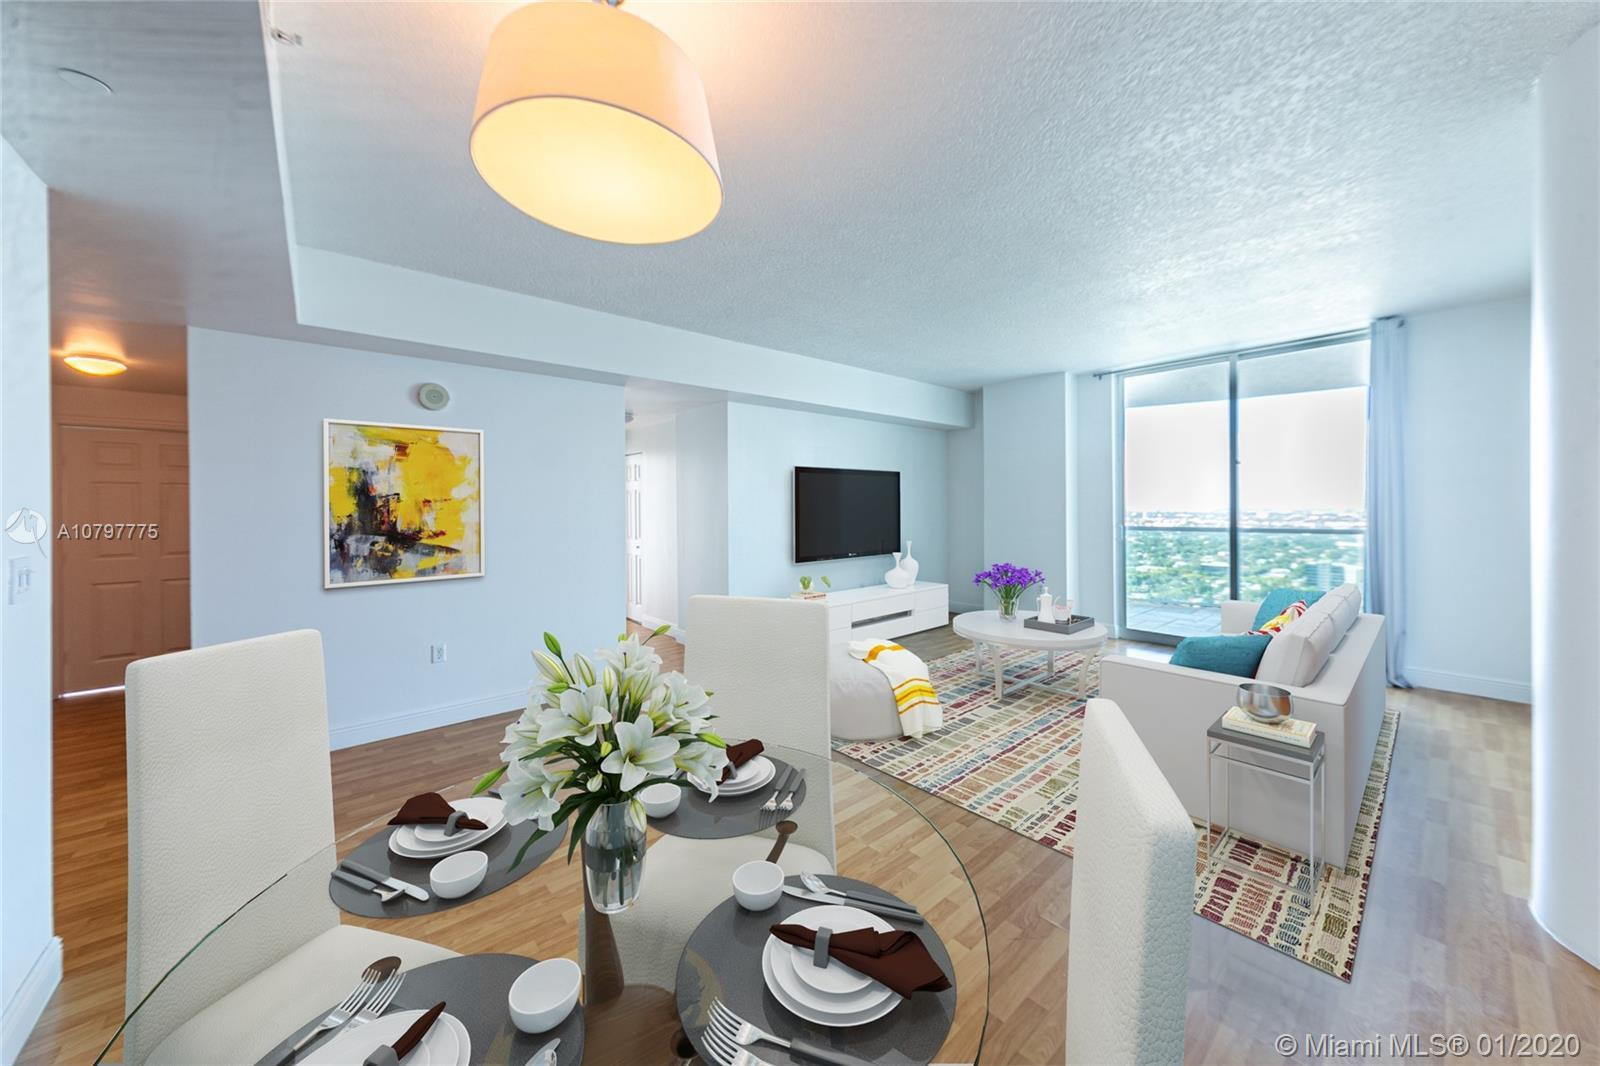 Rare to find: 3 bedroom / 3 bath corner unit at one of the highly desirable bayfront community in th